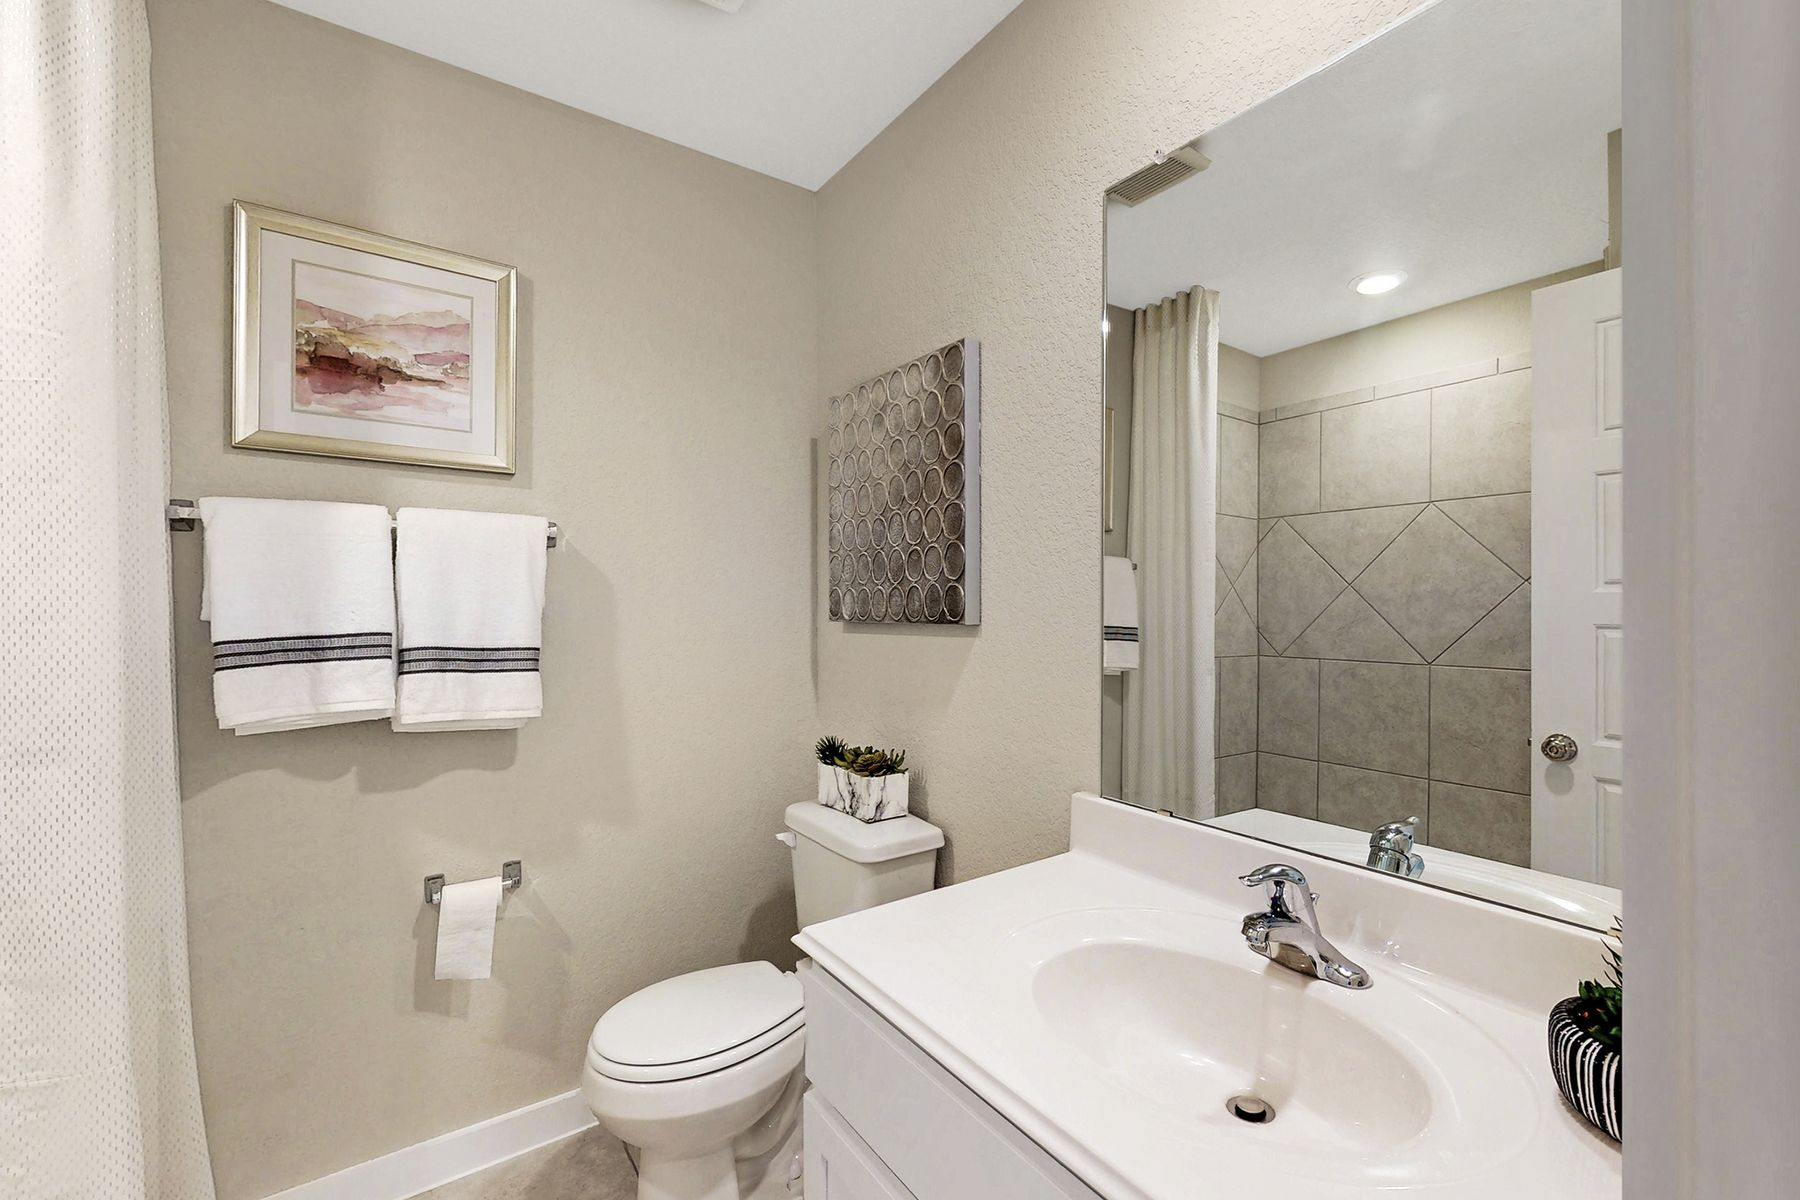 Bathroom featured in the Freestone By M/I Homes in San Antonio, TX